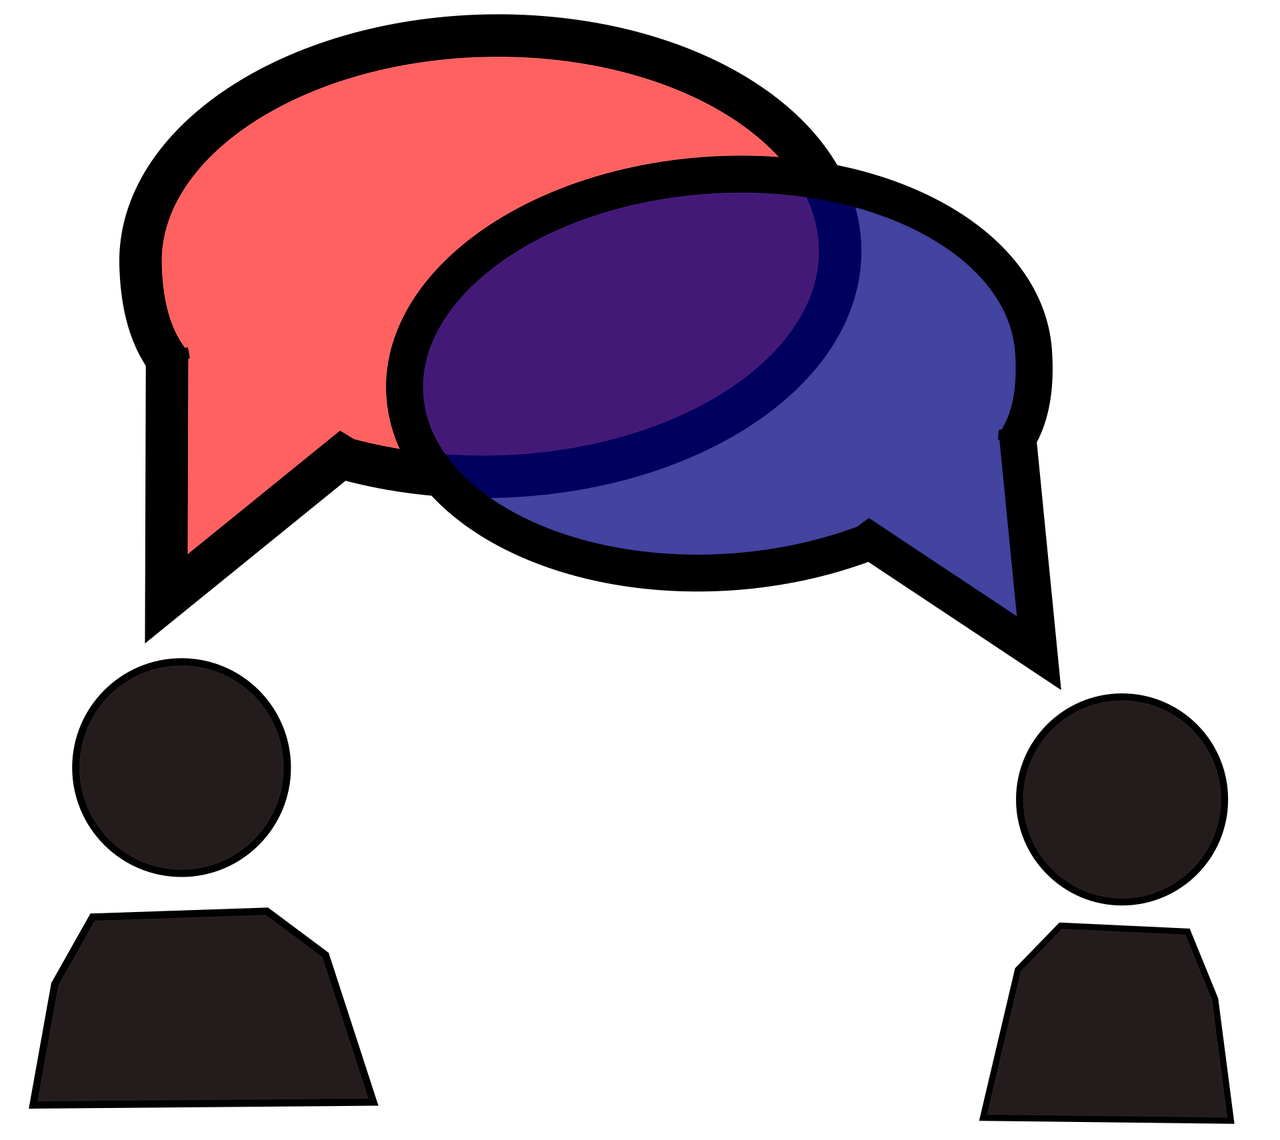 Icon image shown to indicate two speakers are sharing information back and forth